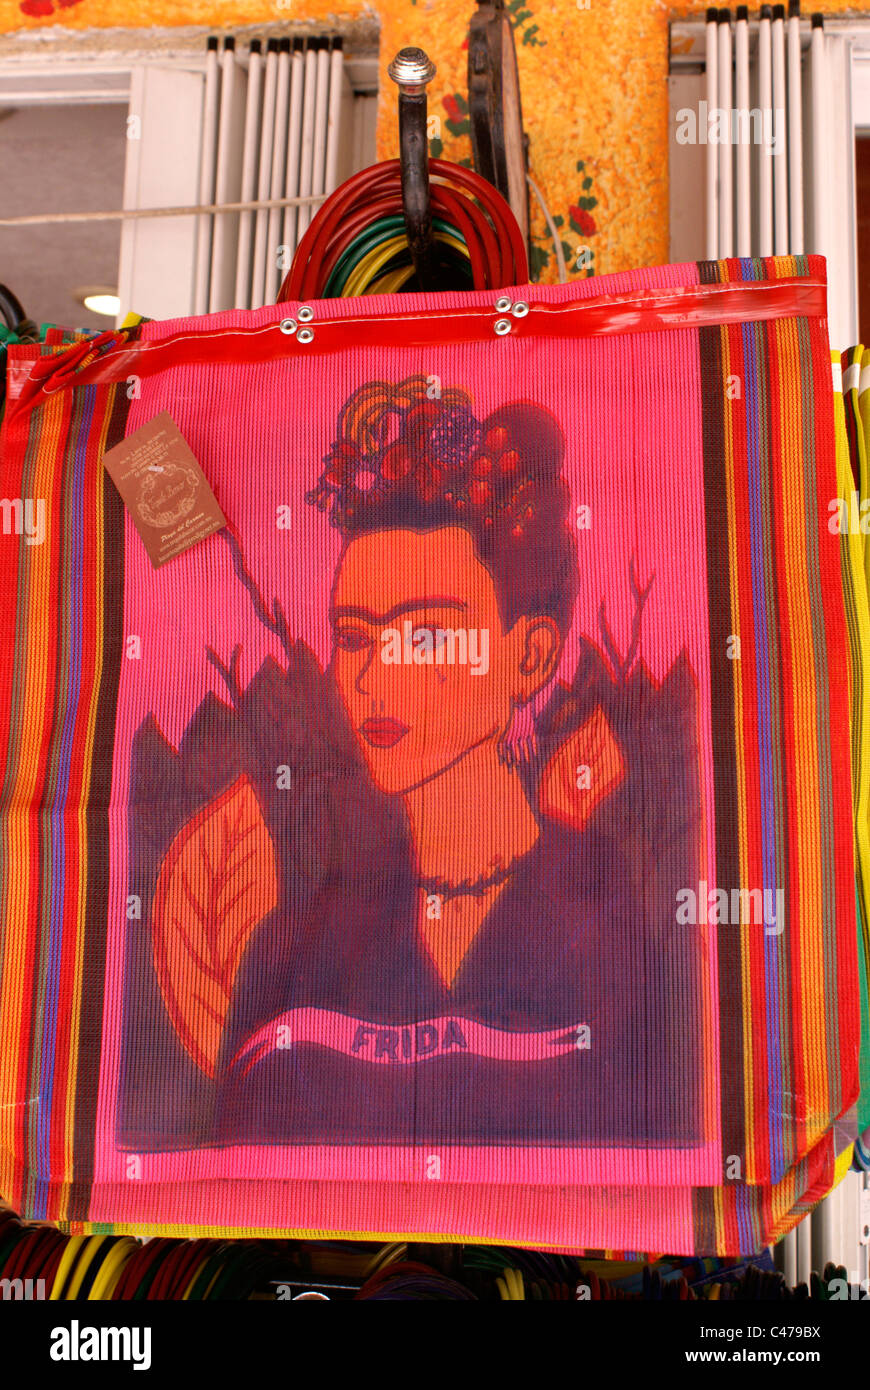 Portrait of Frida Kahlo on shopping bags, Playa del Carmen, Riviera Maya, Quintana Roo, Mexico - Stock Image